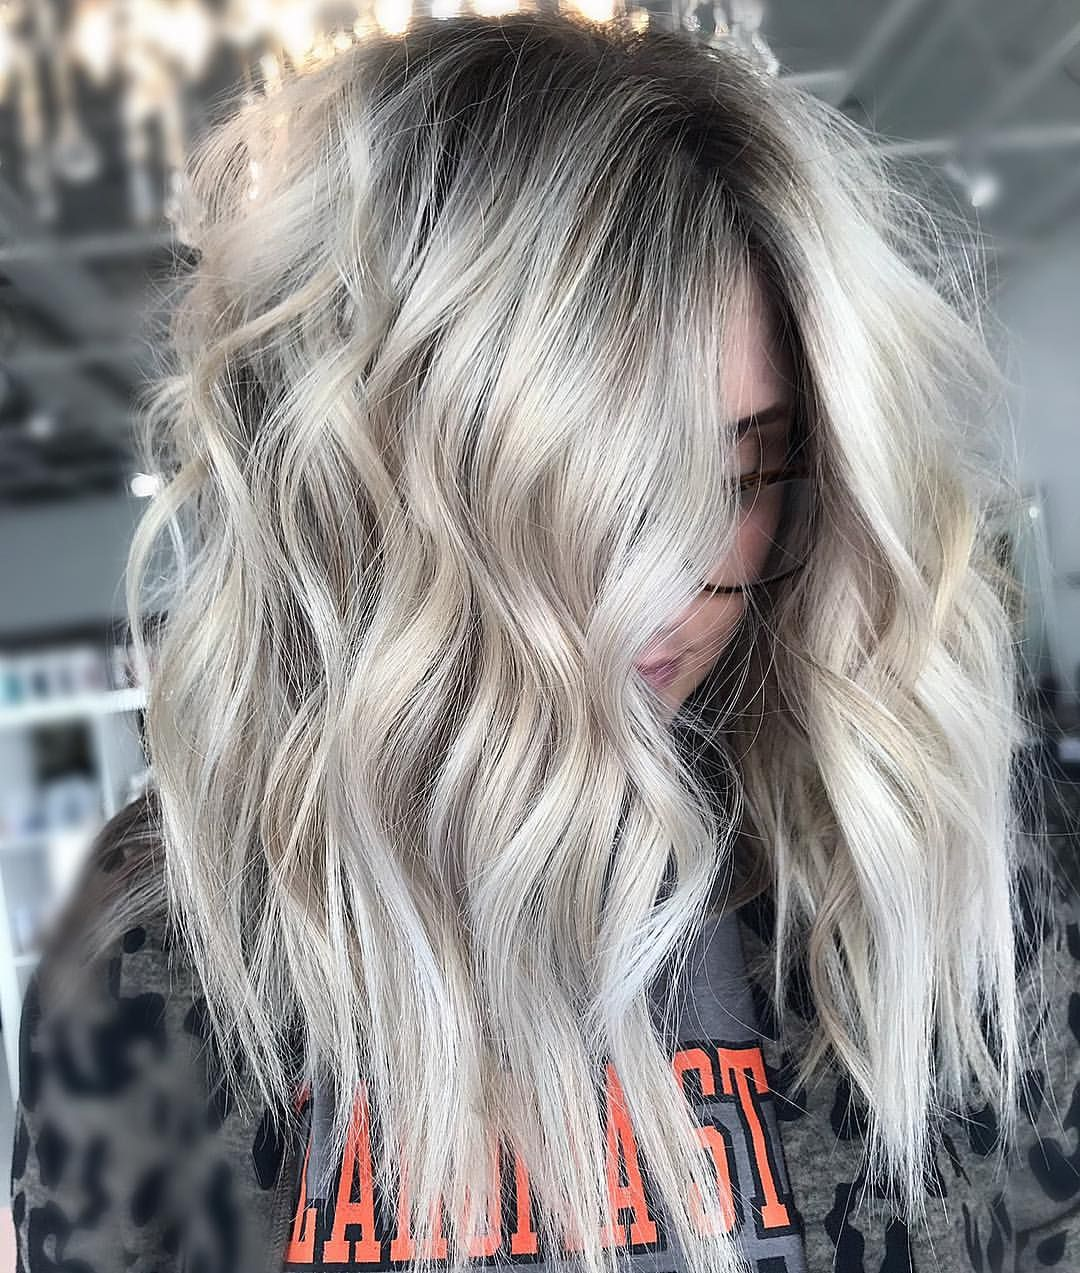 "Brandie Campbell|Hairstylist on Instagram: ""Okay @_hairbyhillary_ now I need you do this to my head k thanks"